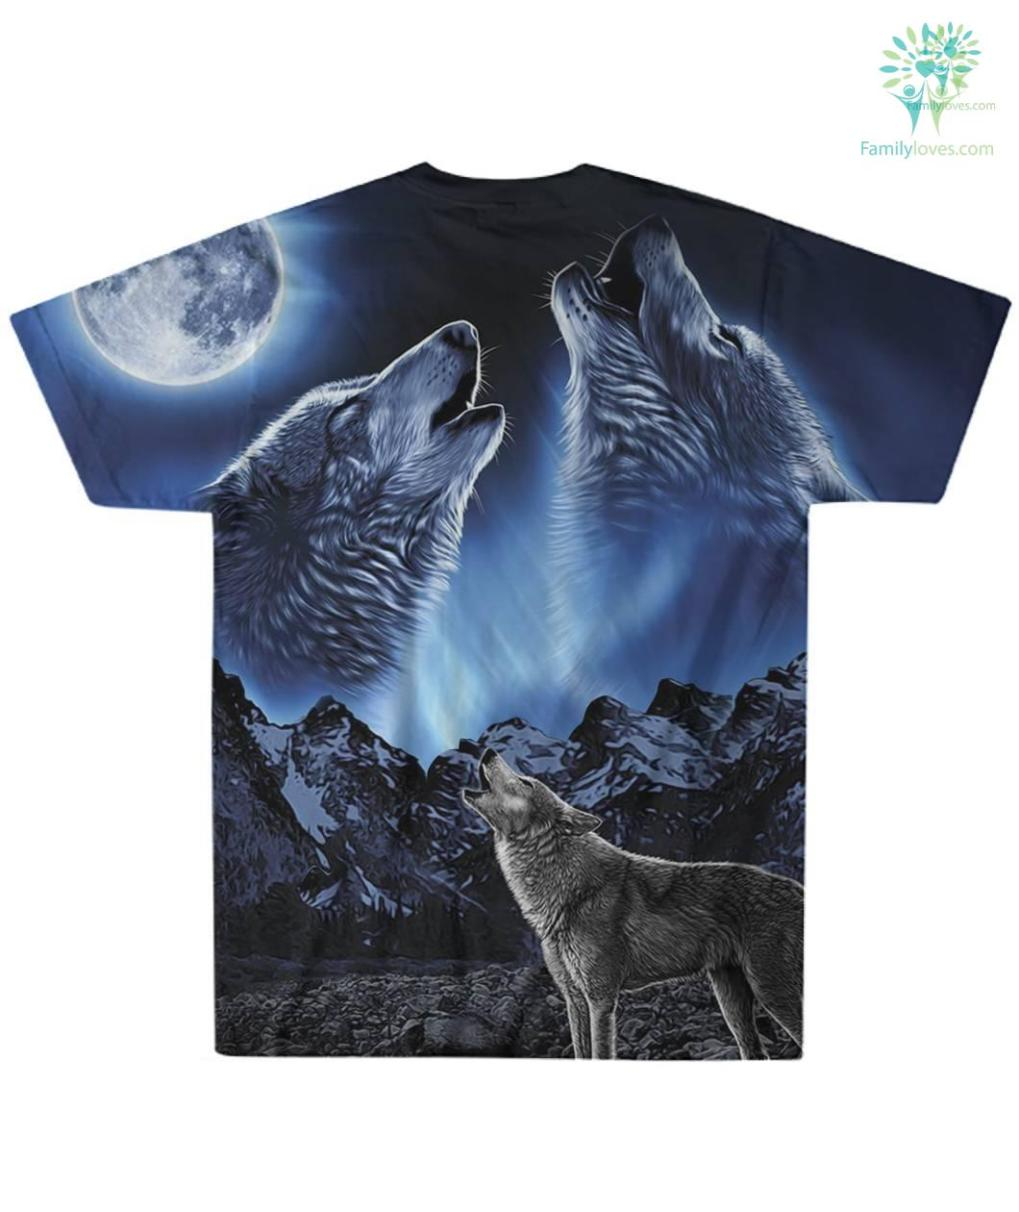 familyloves.com Wolves Howling Moon Over Print T-shirt %tag